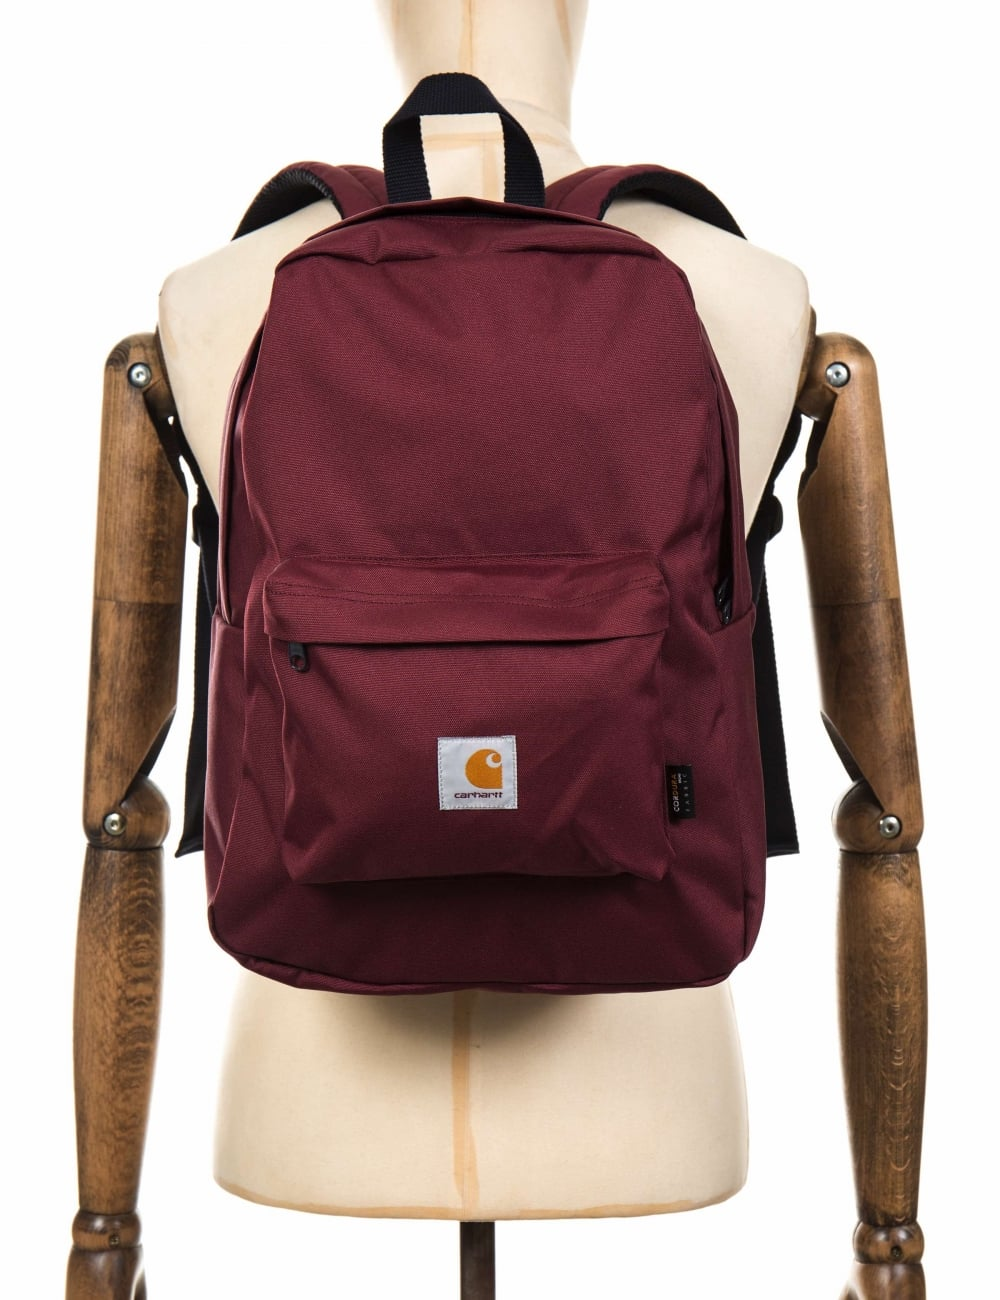 34ee3d952 Carhartt WIP Watch Backpack - Chianti/Dark Navy - Accessories from ...